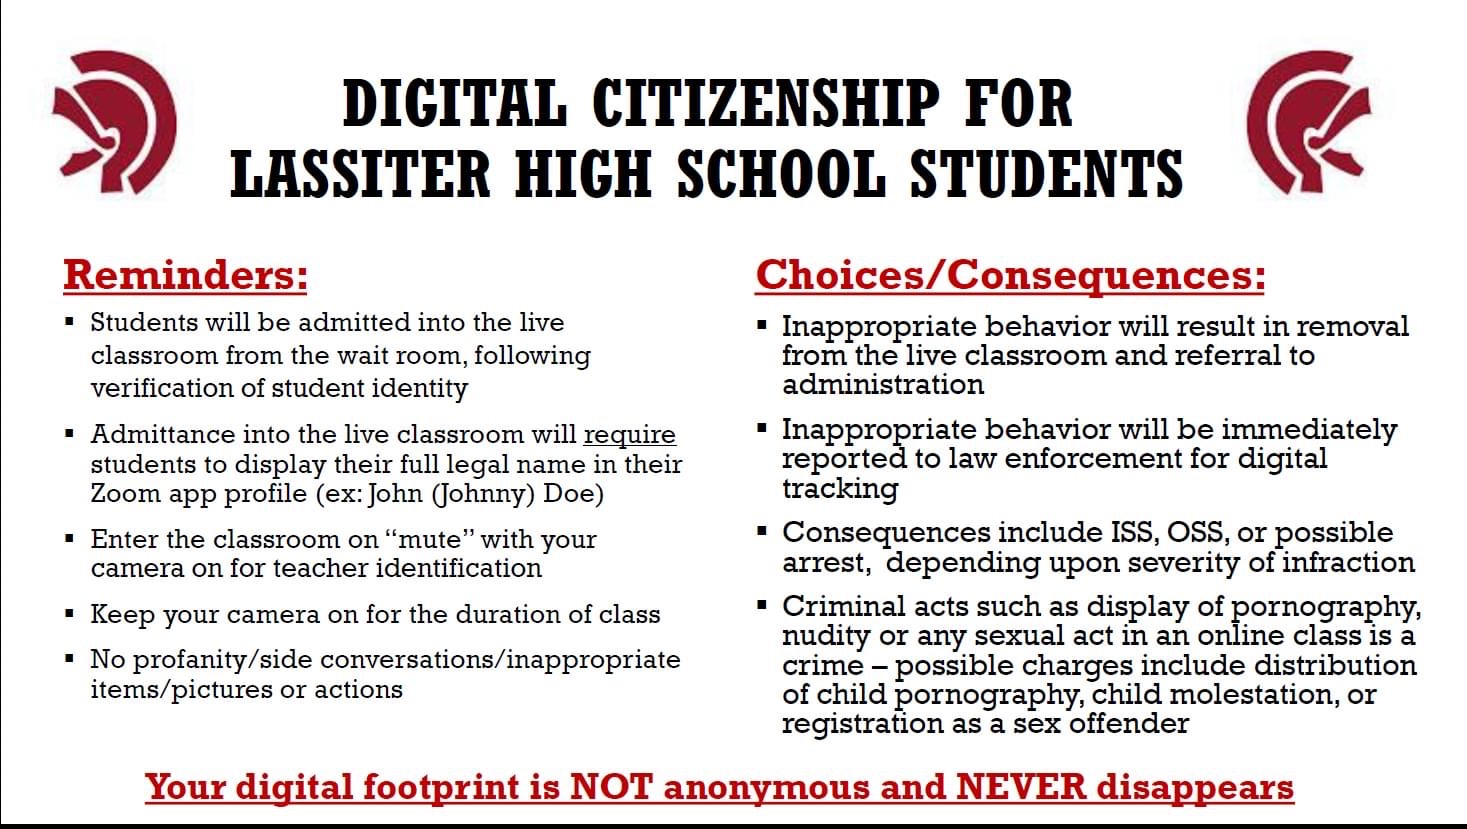 Lassiter Digital Citizenship